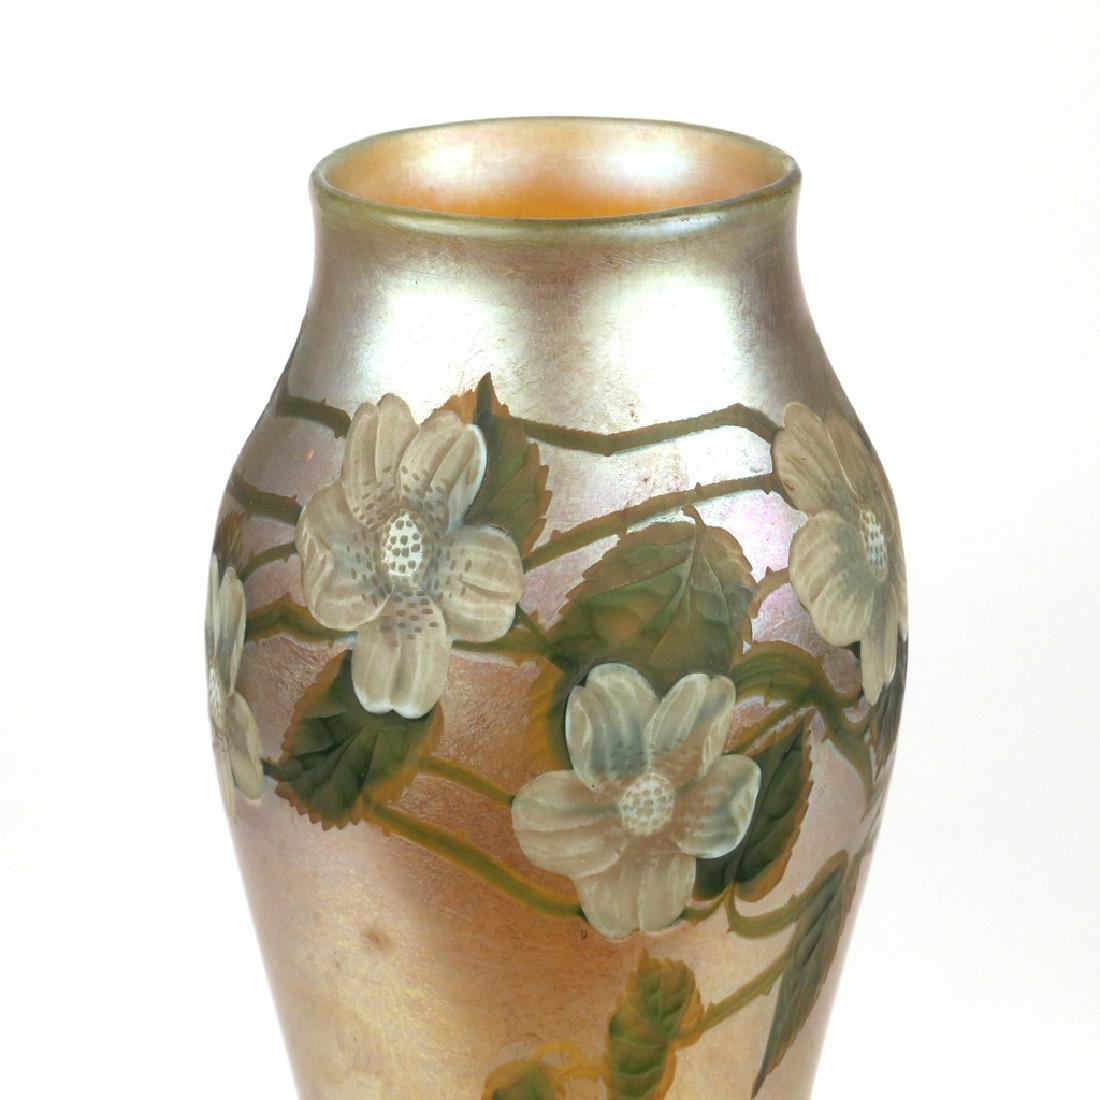 LOUIS COMFORT TIFFANY FAVRILE PAPERWEIGHT VASE - 4